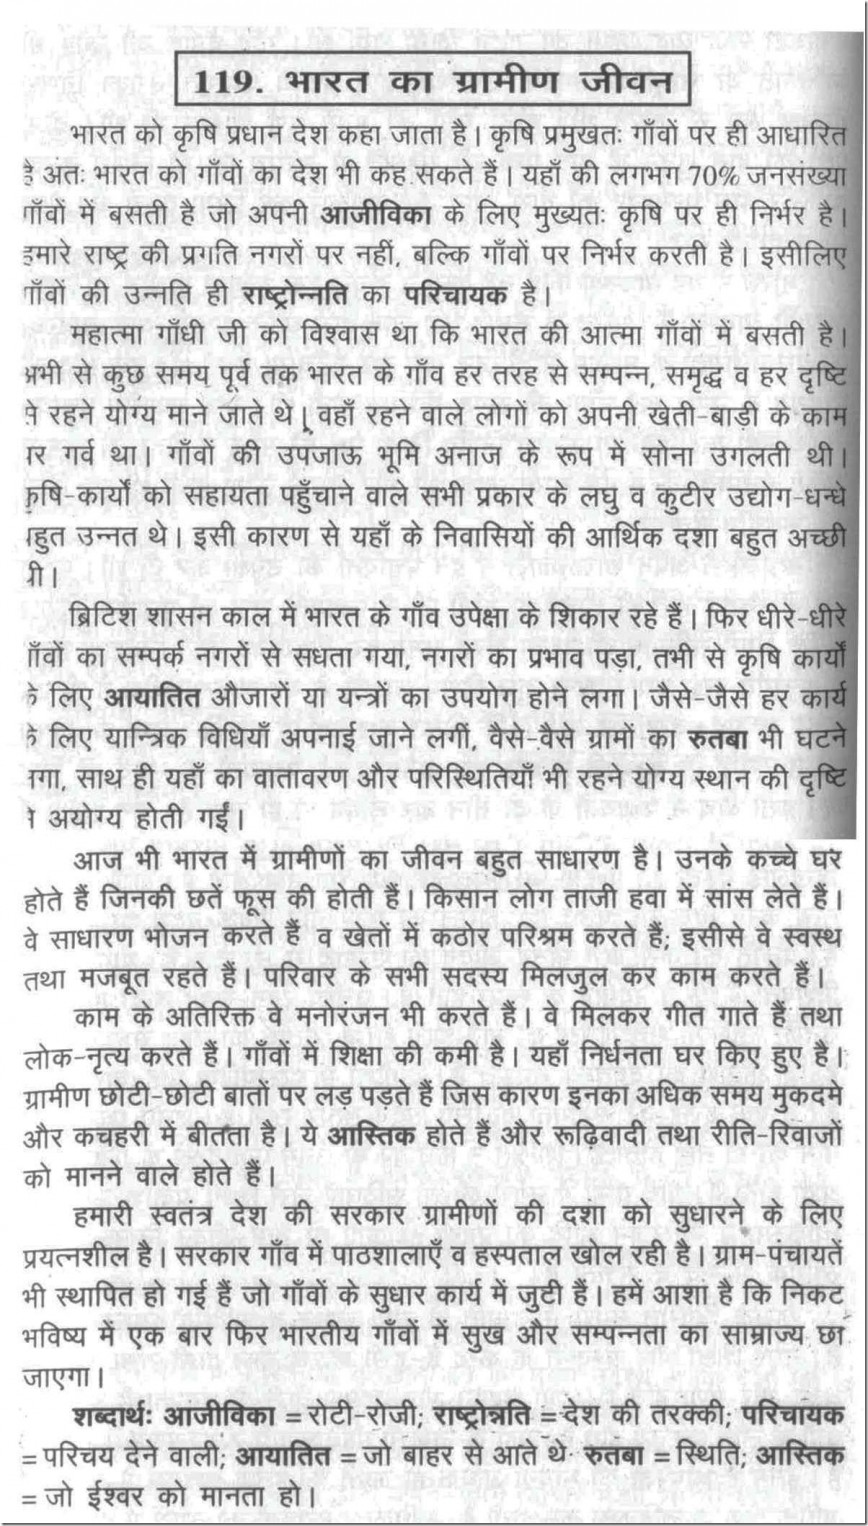 012 My Country Essay In Hindi Example 100119 Thumb Phenomenal Is Great For Class 8 Dream India